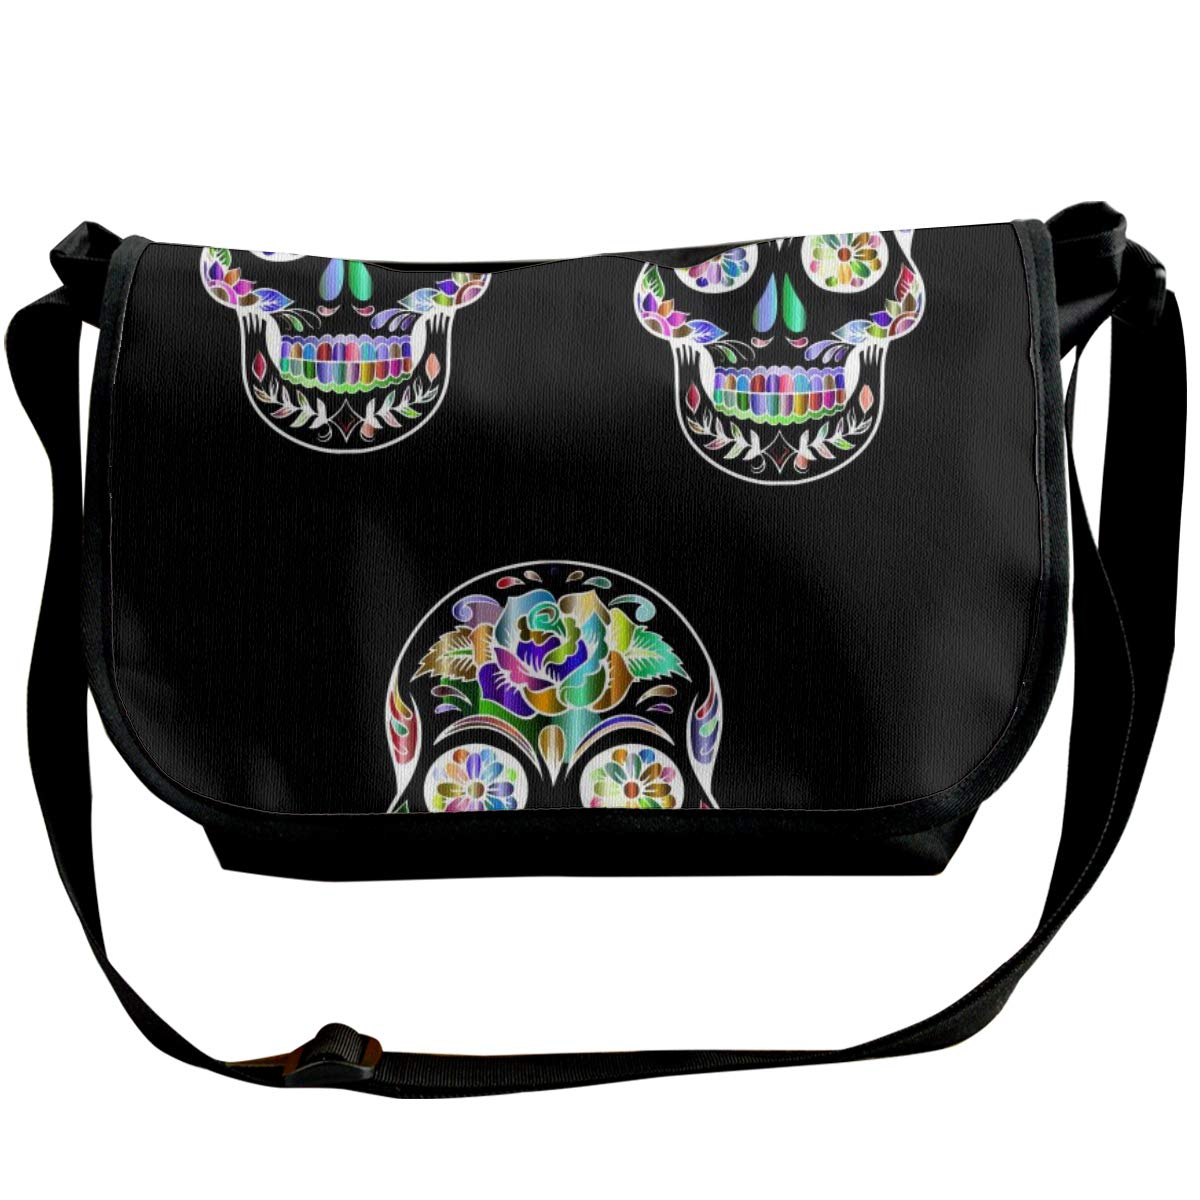 Suger Skull Unisex Crossbody Single Shoulder Bag With Shoulder Girdle Cellphone Pouch Purse Wallet